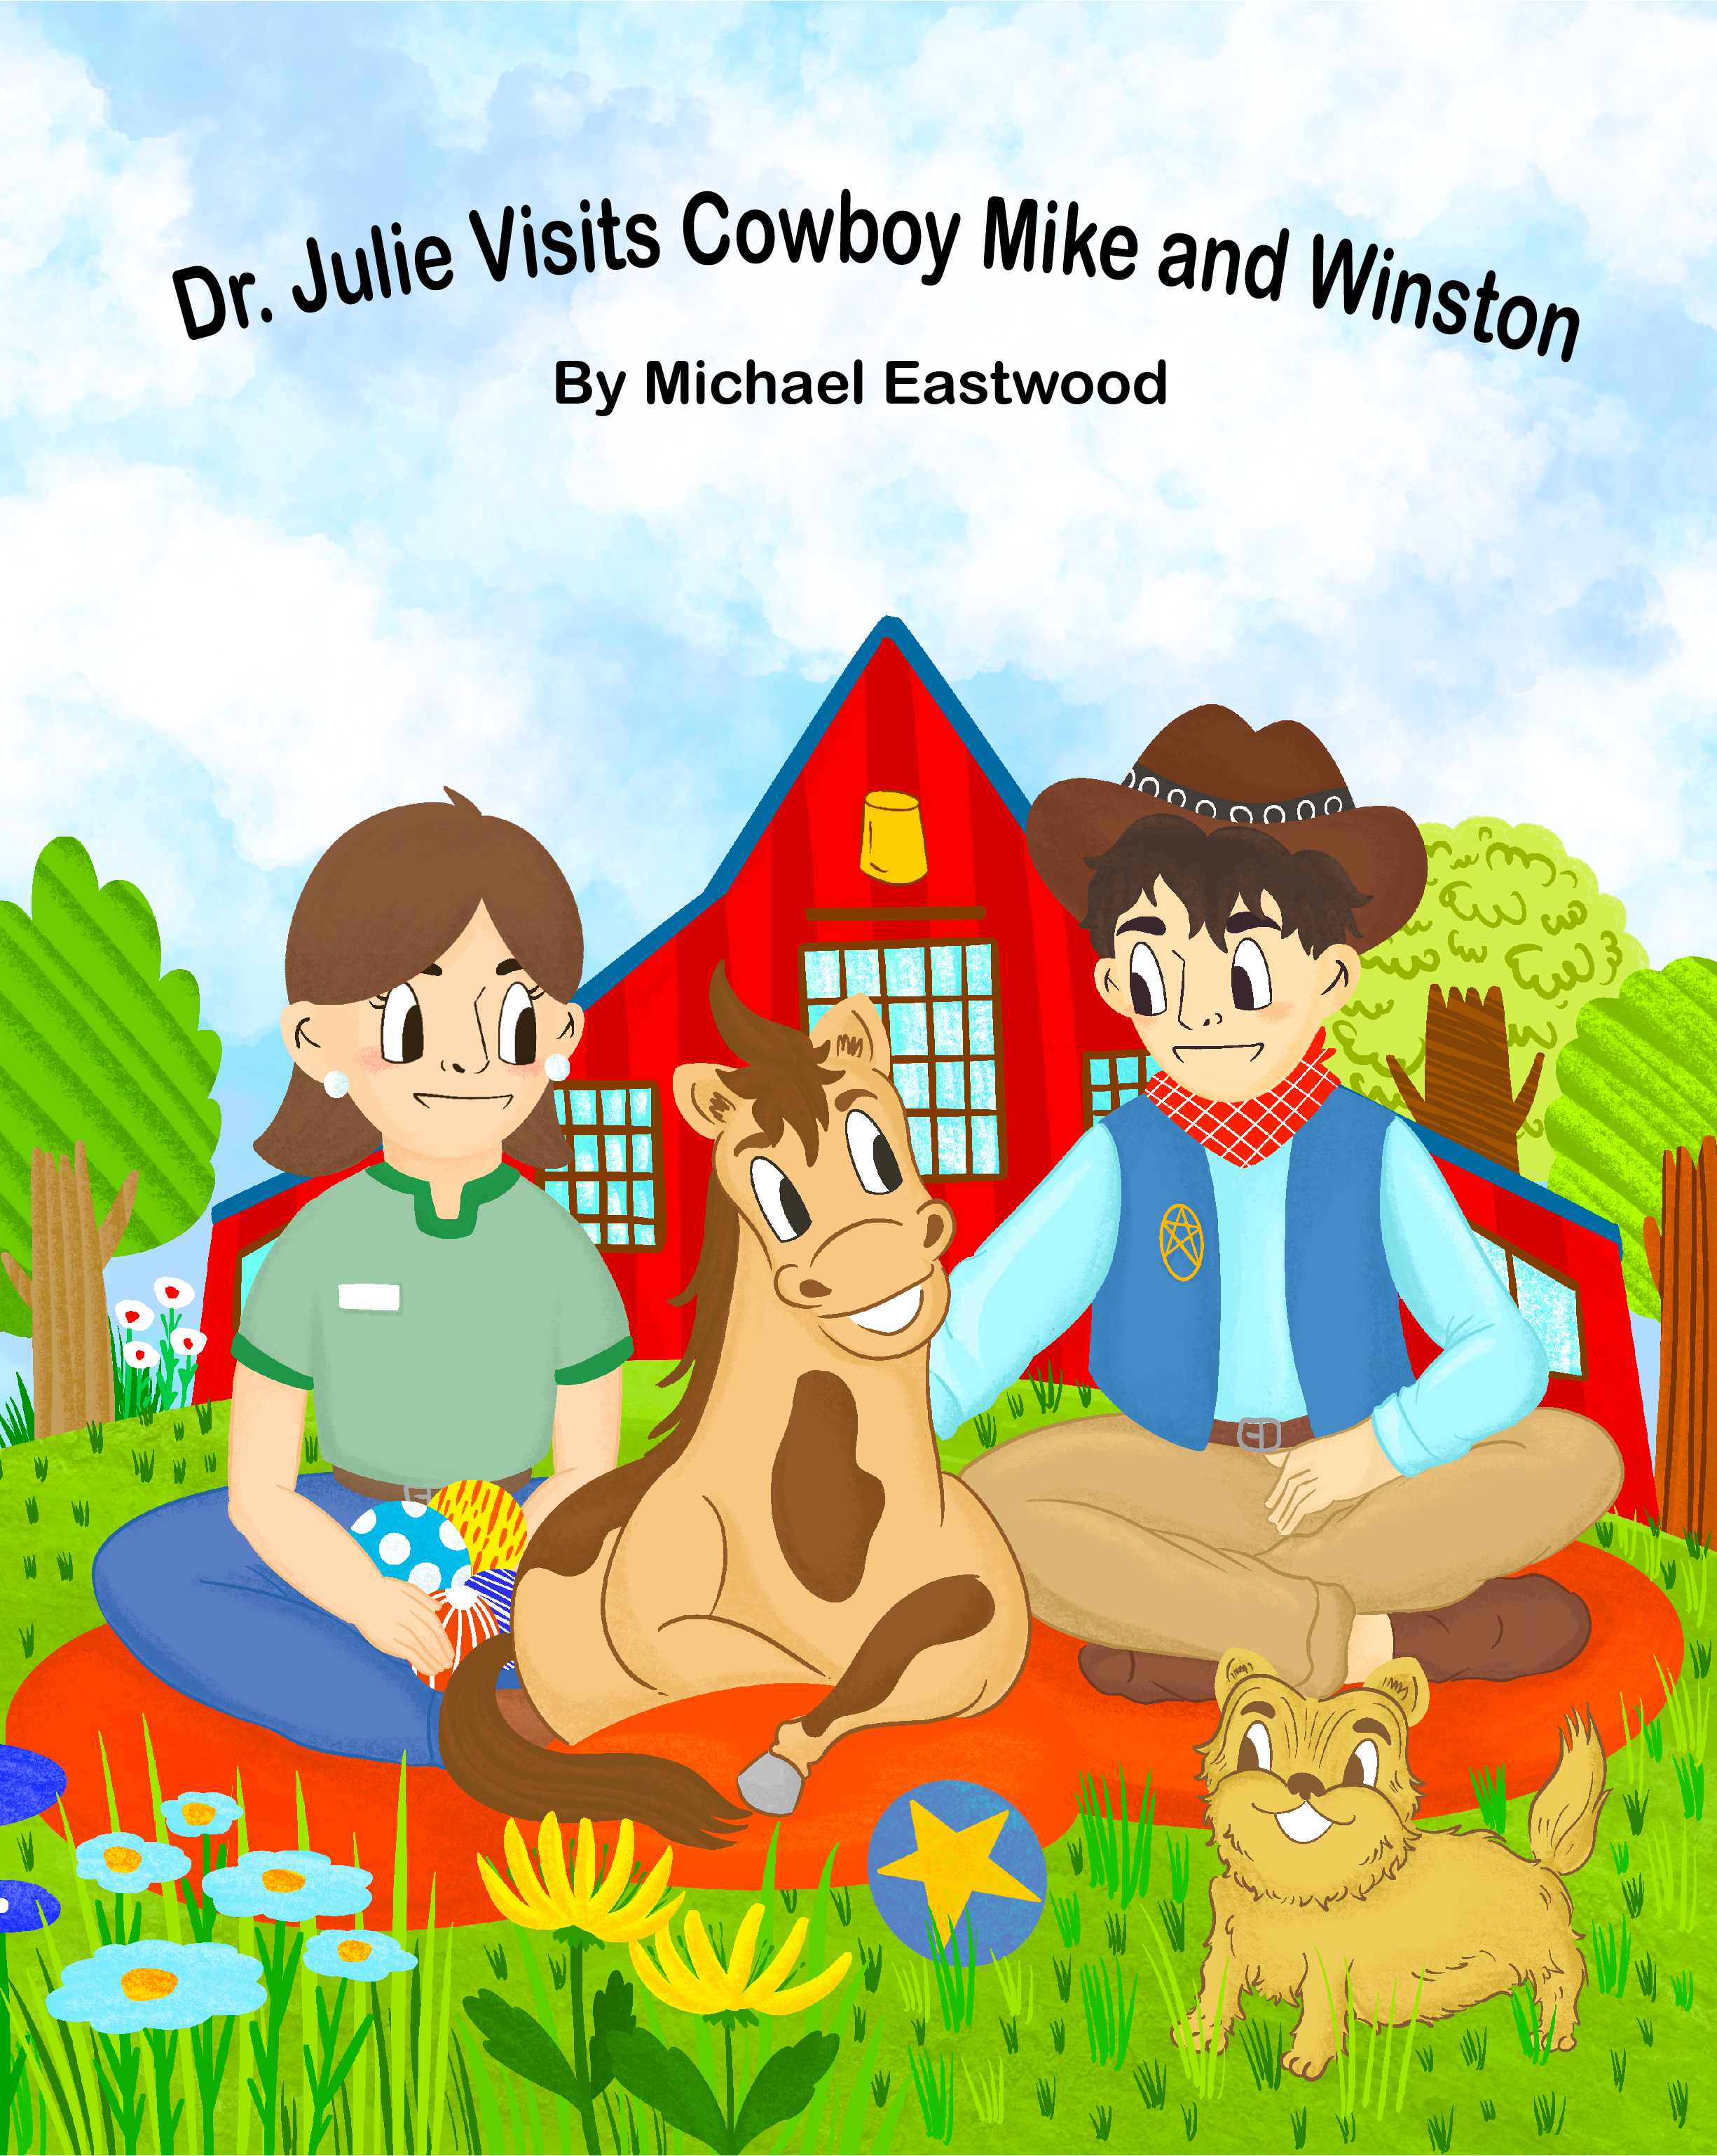 Dr. Julie Visits Cowboy Mike and Winston is coming soon to Amazon by Michael Eastwood